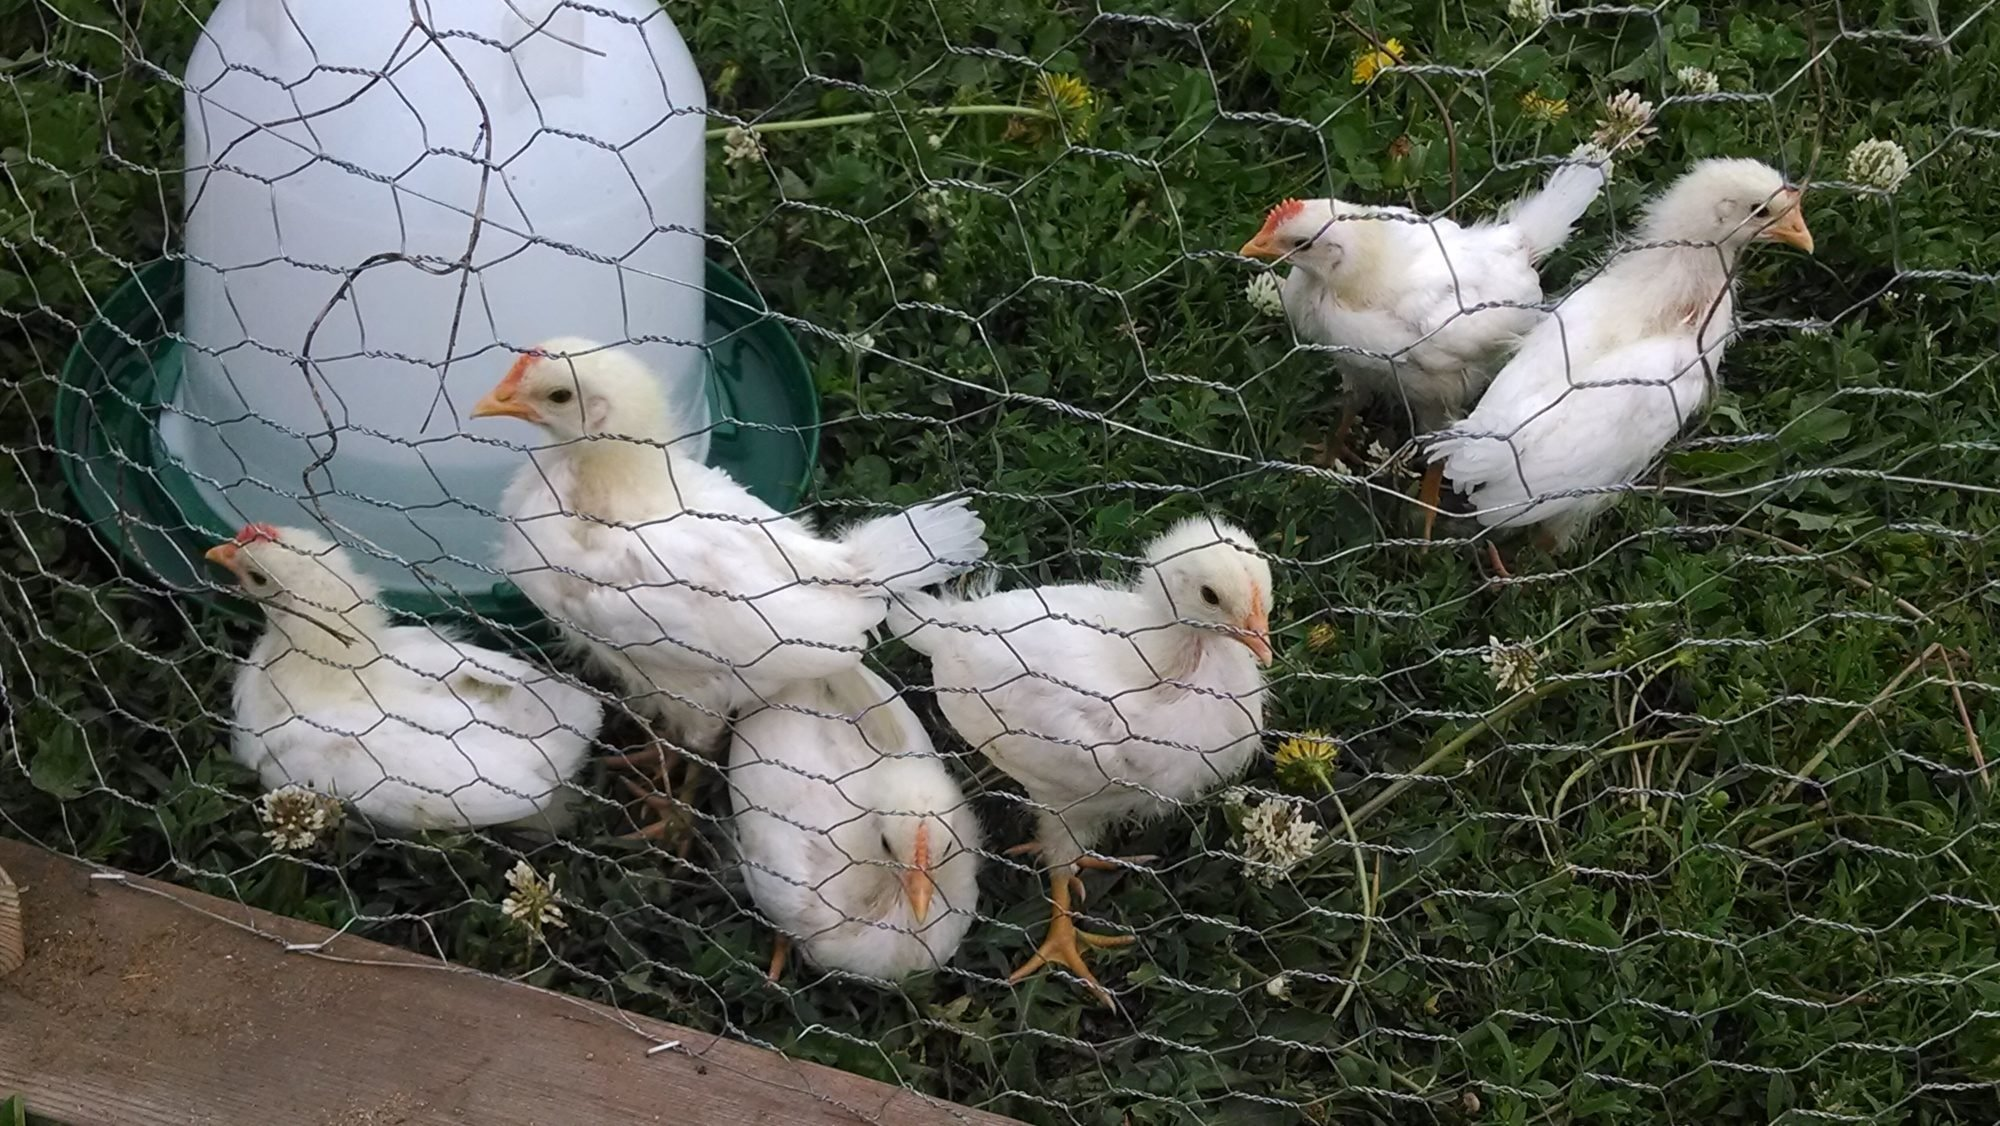 new to chicken raising hens or roos backyard chickens